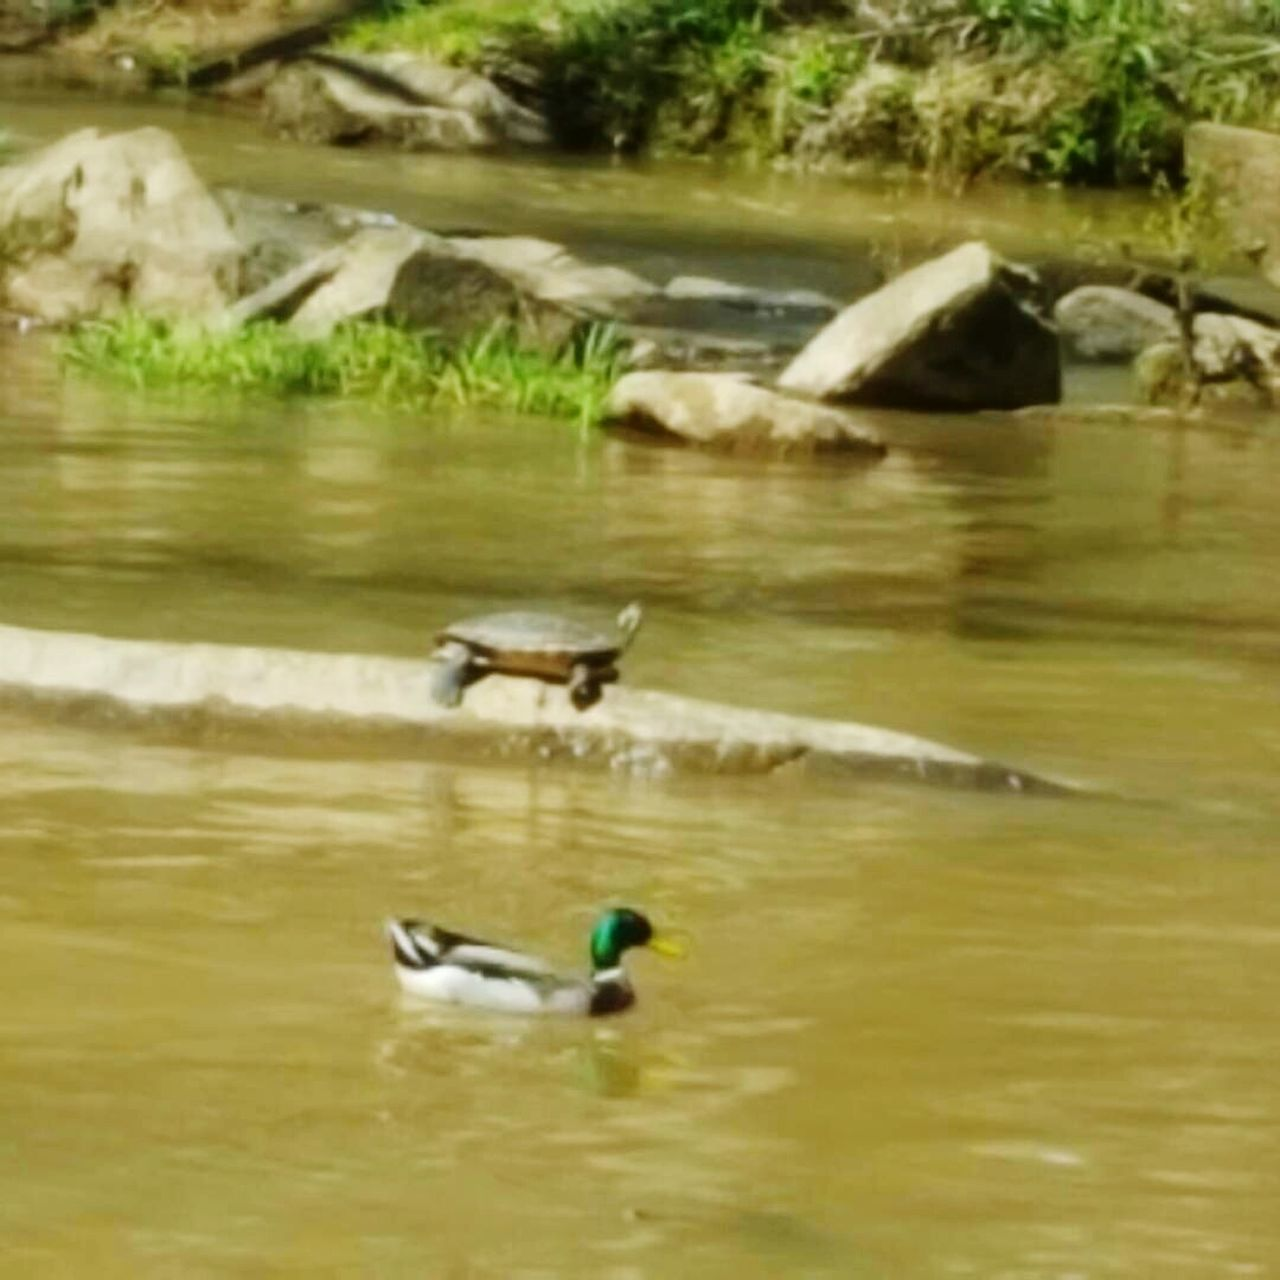 Turtle and duck Animals In The Wild Animal Themes Bird Water Animal Wildlife Swimming Nature Day Outdoors Lake No People Nature Growth Beauty In Nature Fragility Exploring Love Where You Live Spartanburg, SC Glendale Shoals Water Flowing Down Duck Turtle